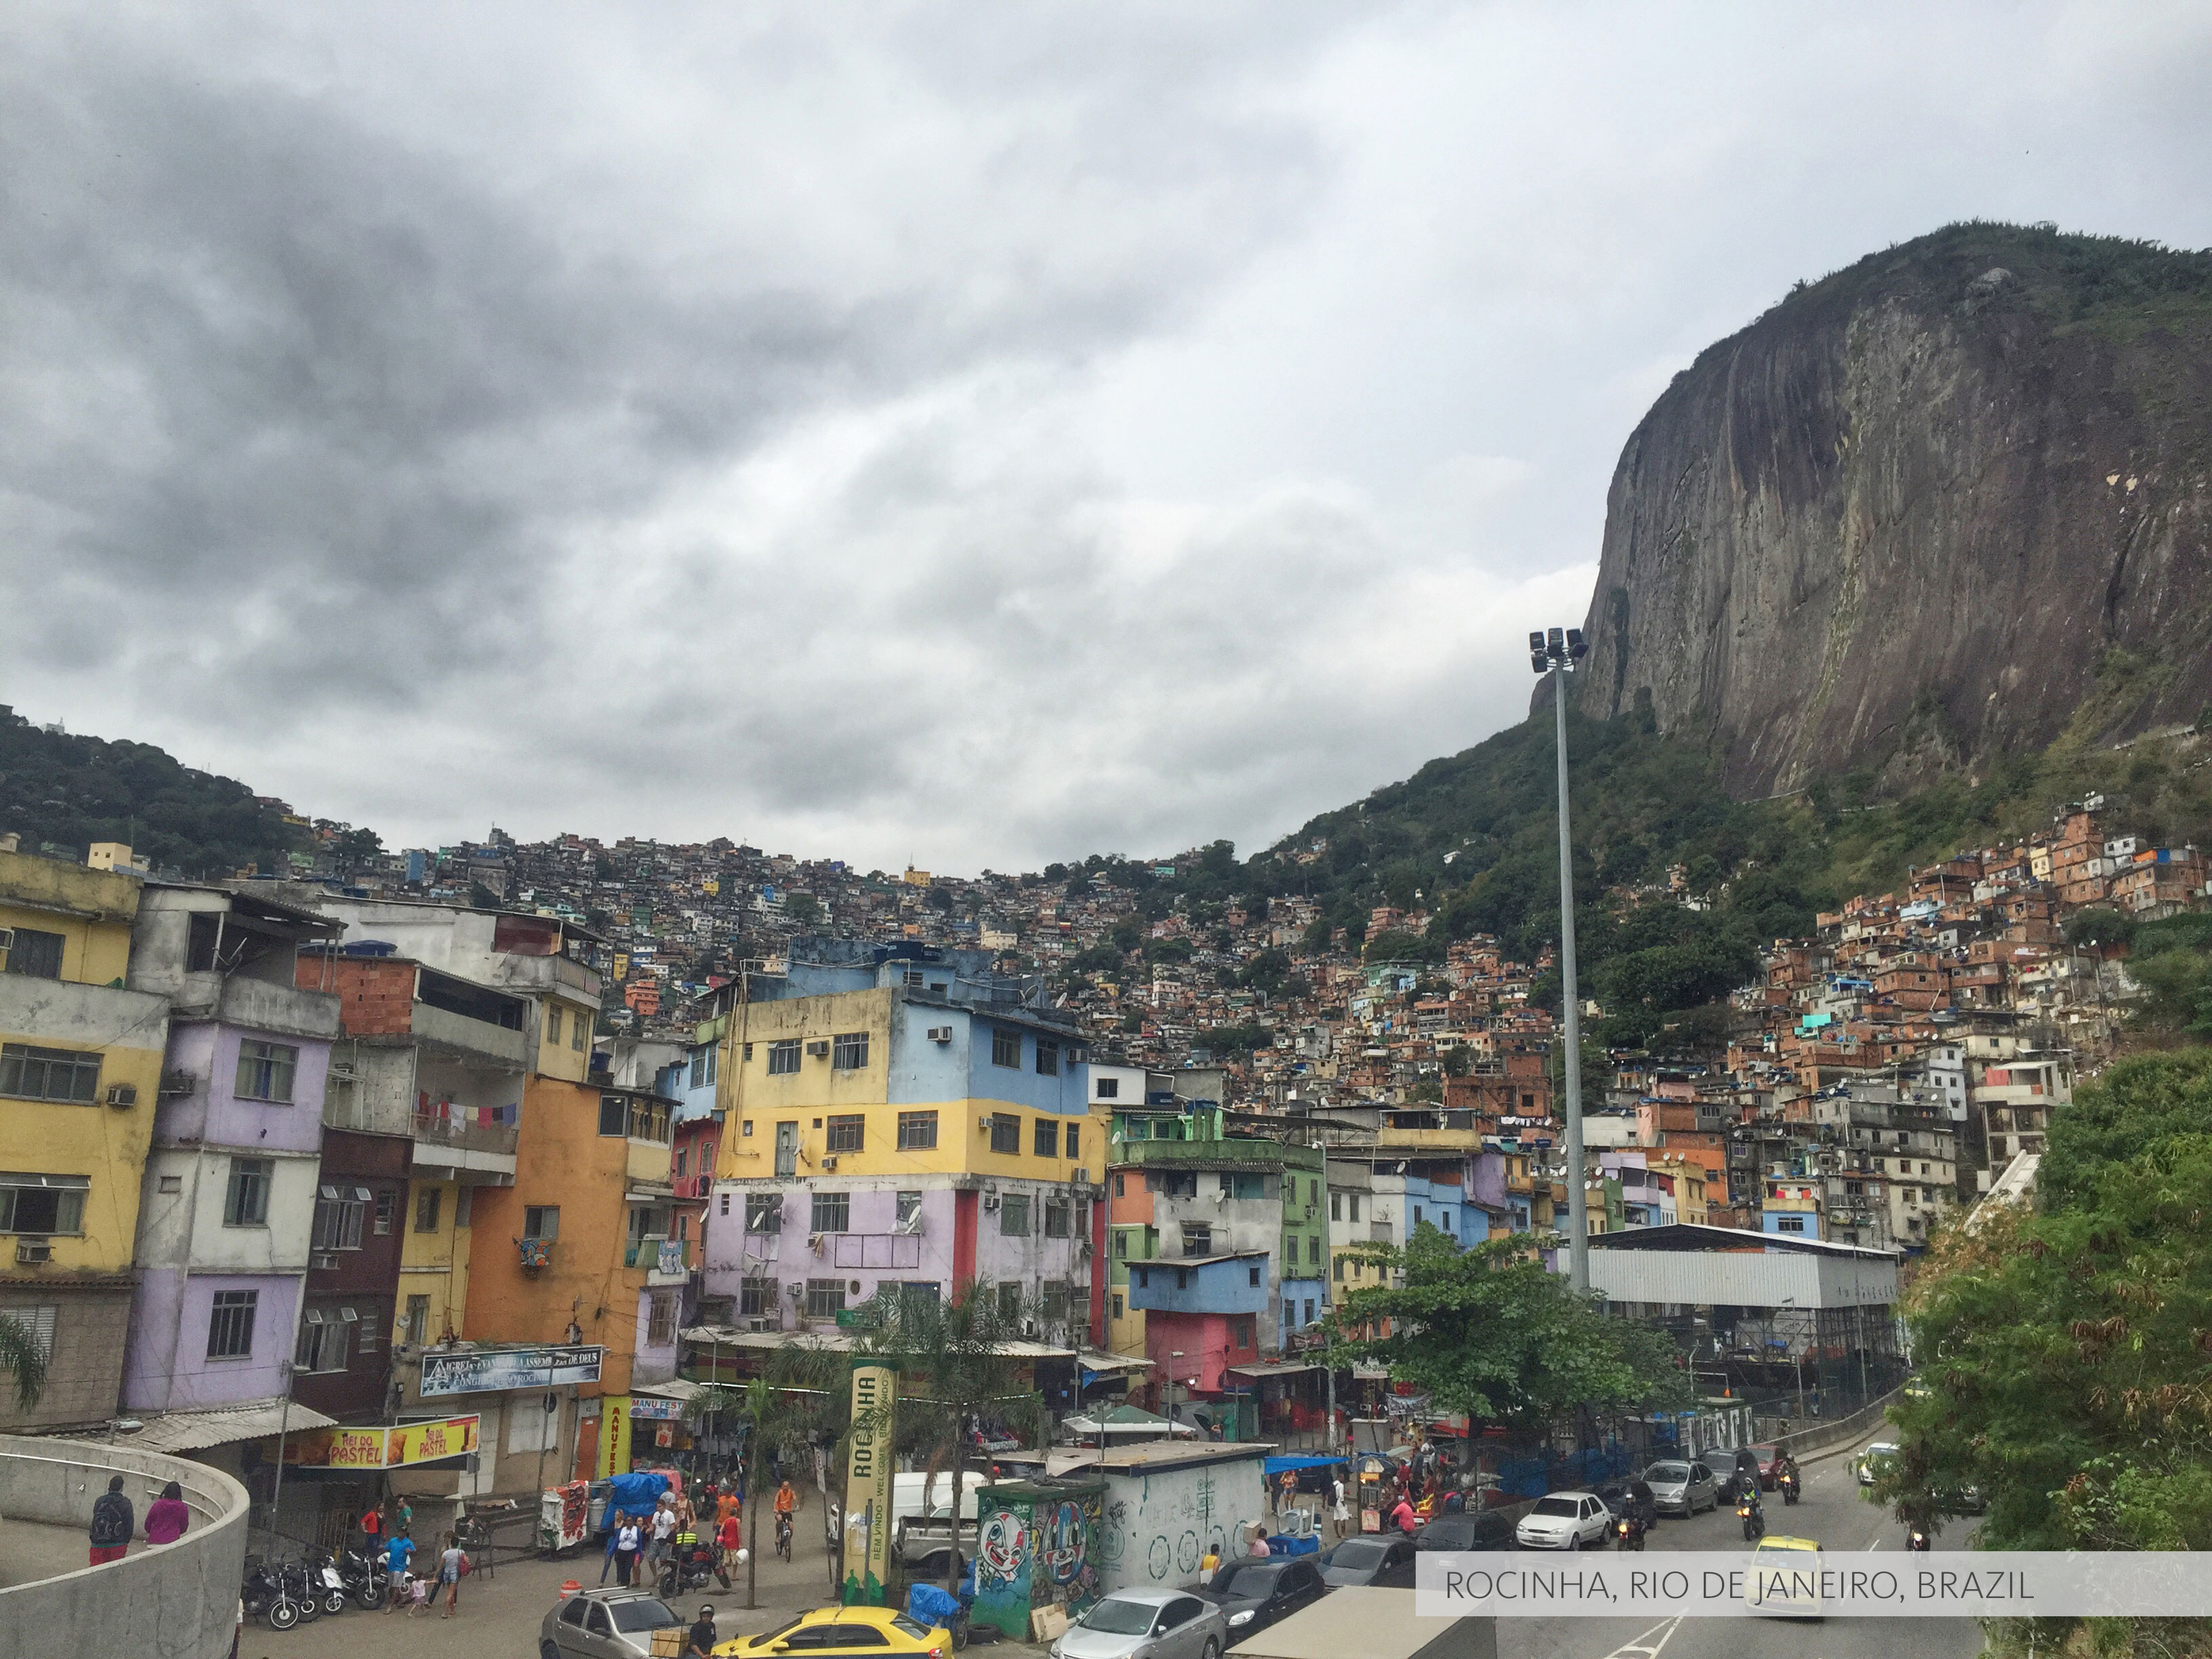 Brazil study abroad - photo story by Daniel Connell